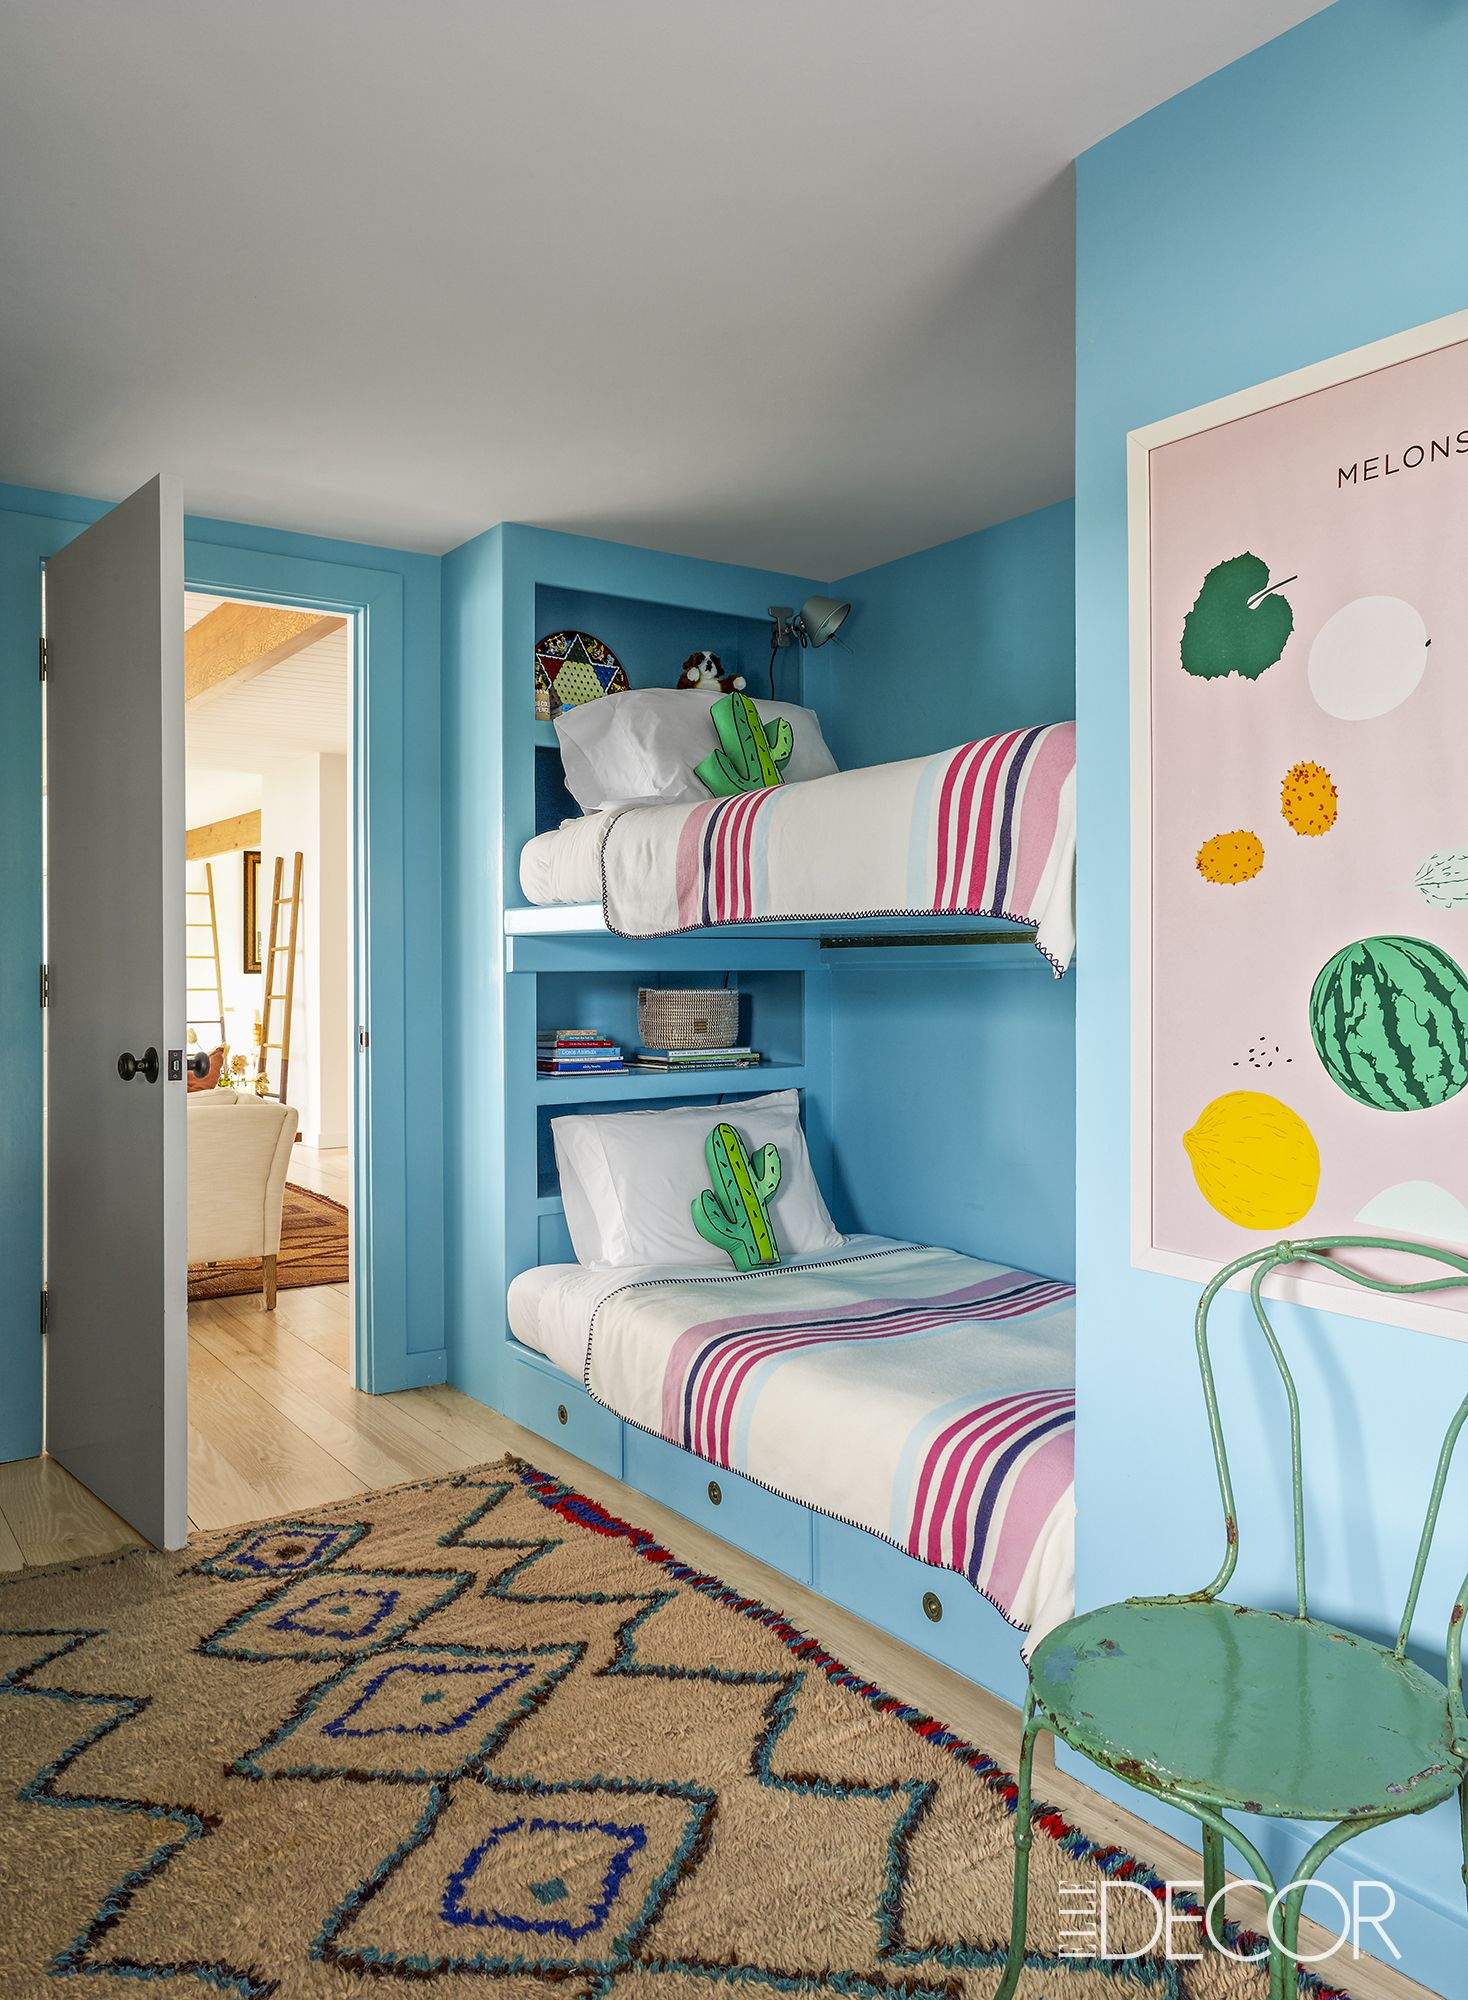 Kids Rooms Ideas Unique 18 Cool Kids' Room Decorating Ideas  Kids Room Decor